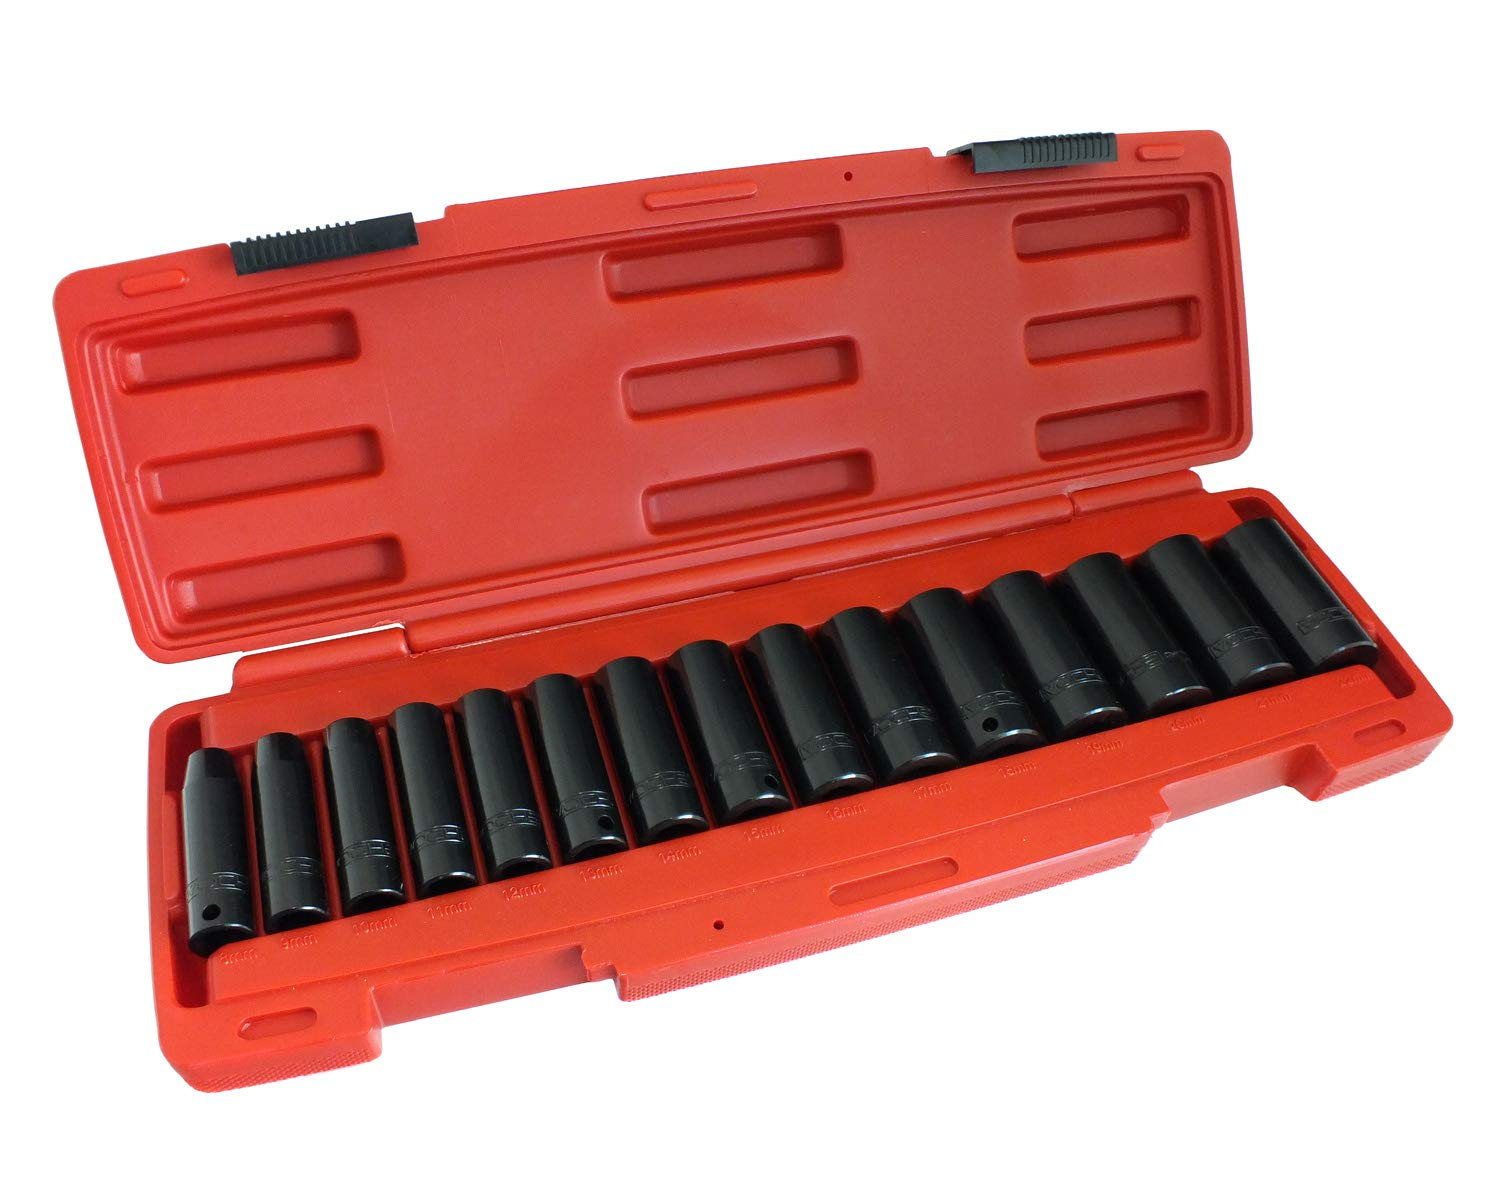 15 Piece 3//8 Dr Deep Impact Metric CRV Socket Set with Storage Case